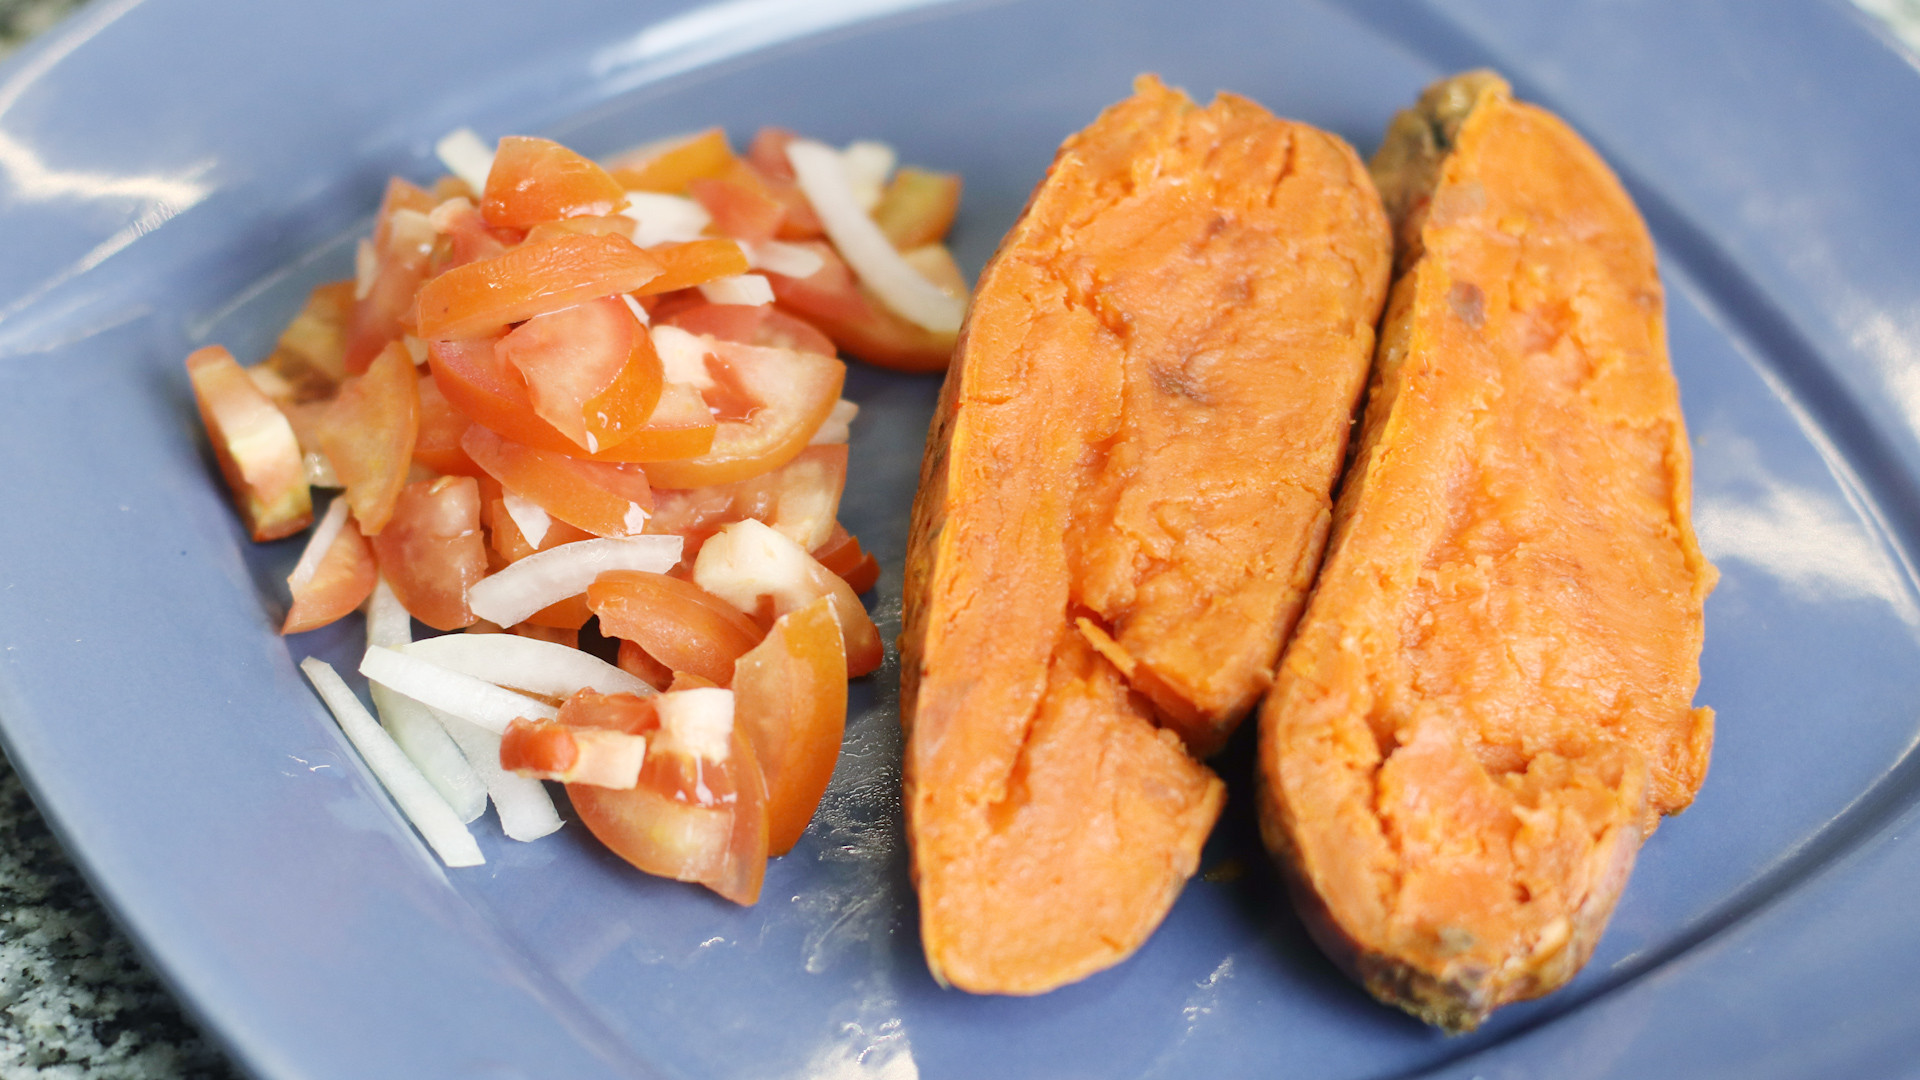 Cook Sweet Potato In Microwave  How to Cook a Sweet Potato in the Microwave 11 Steps